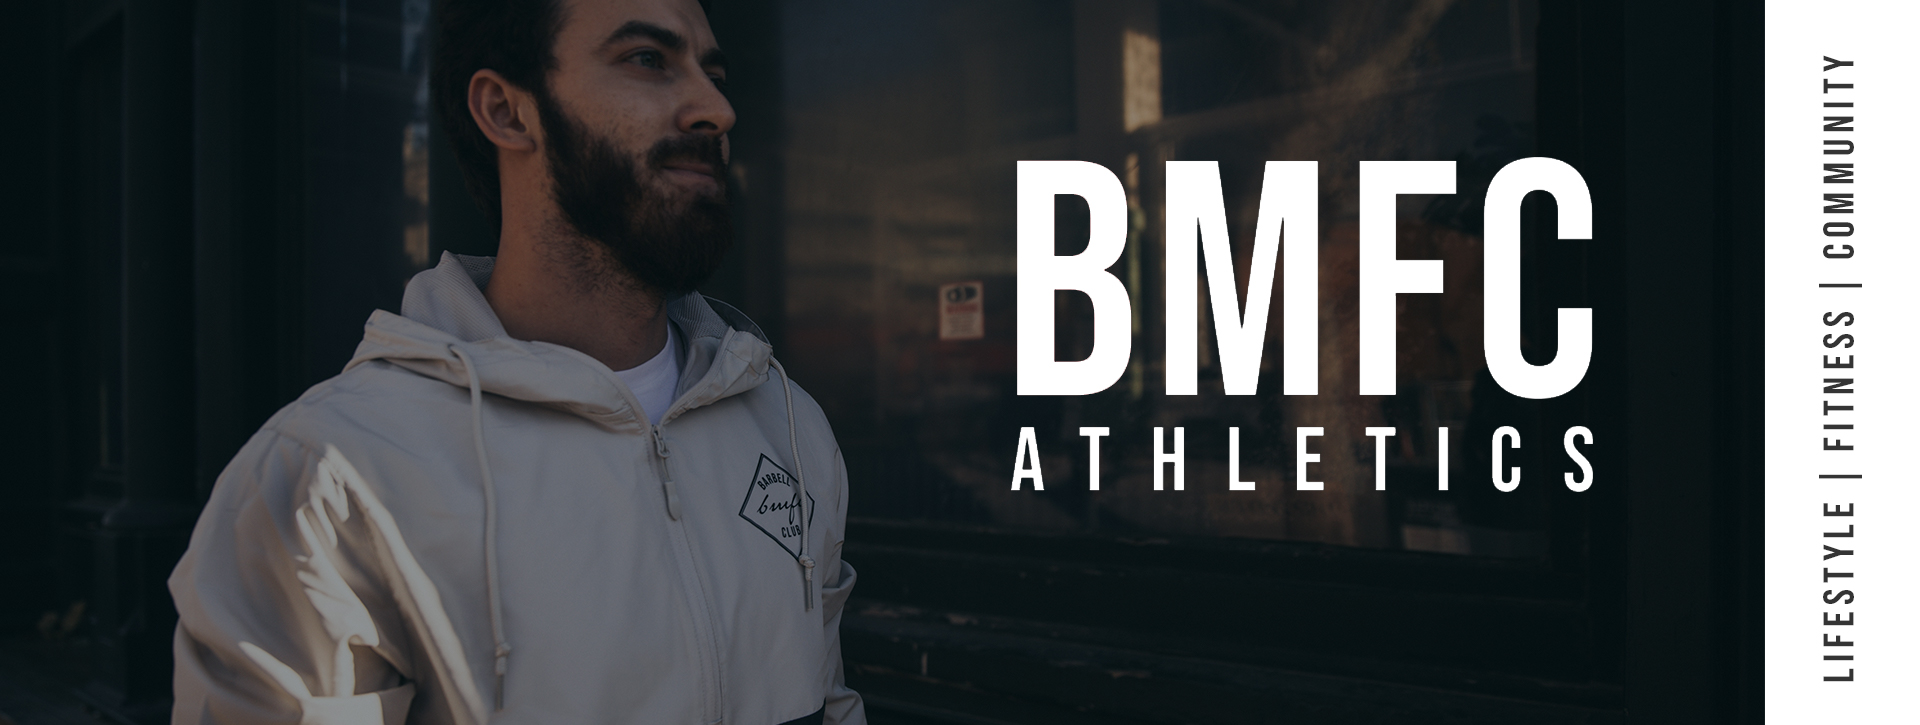 Google Rich results for BMFC Athletics